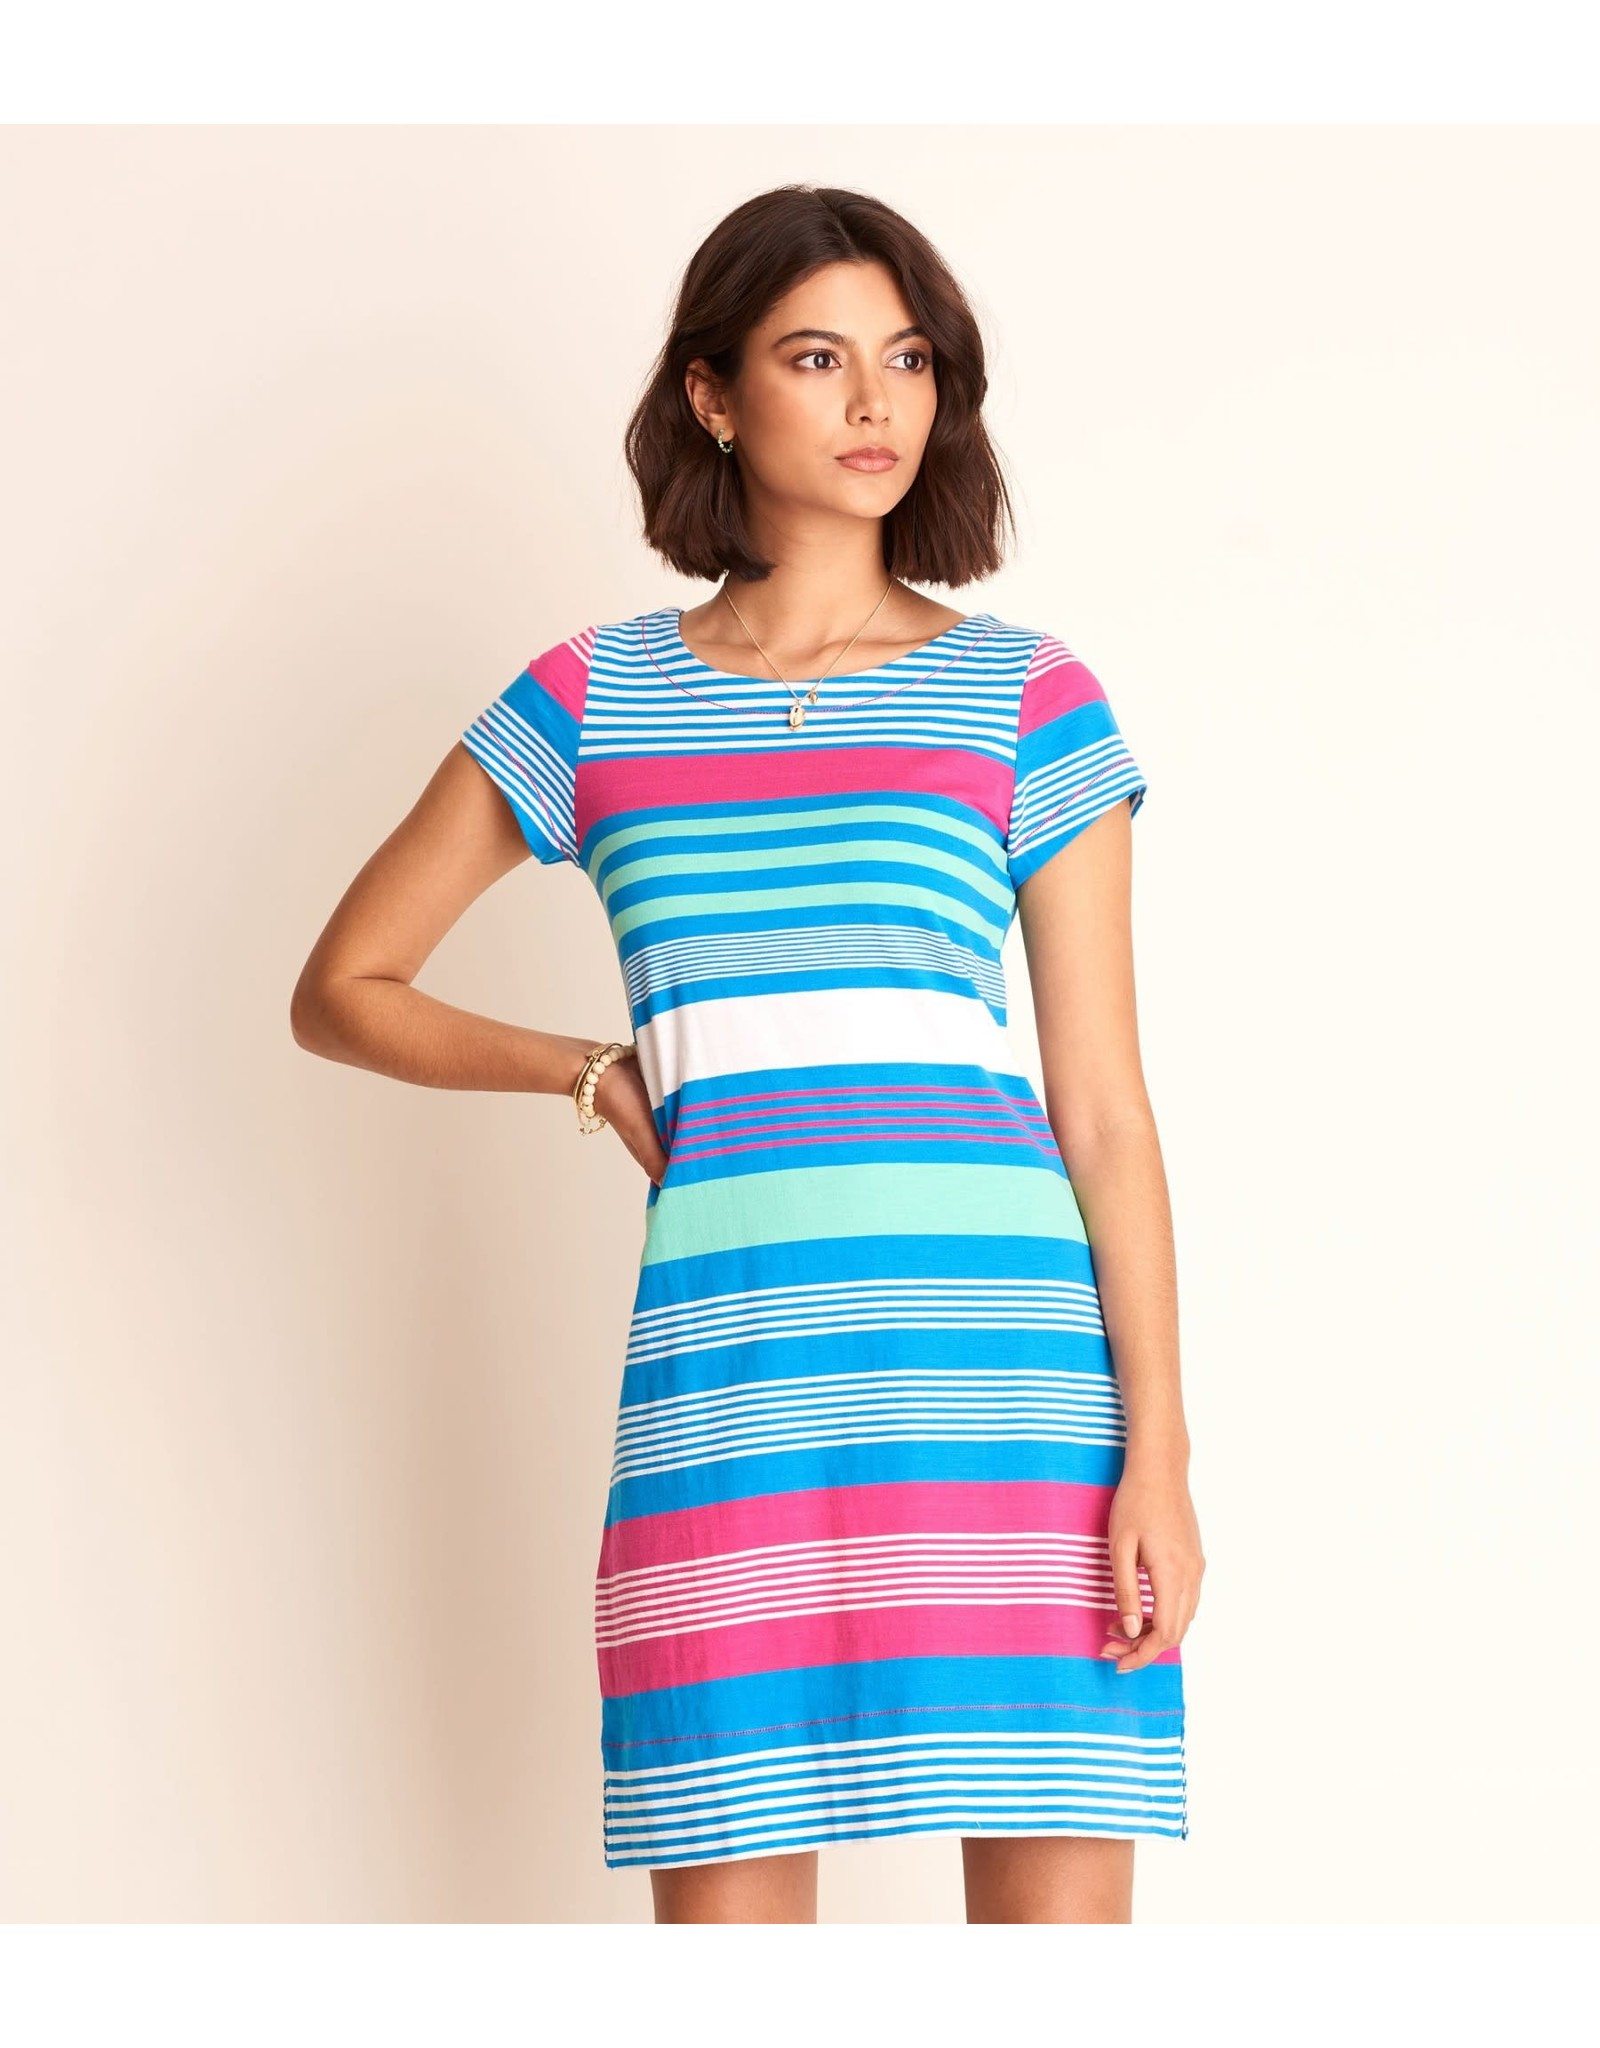 Hatley Nellie Dress - Bermuda Stripes XS ONLY